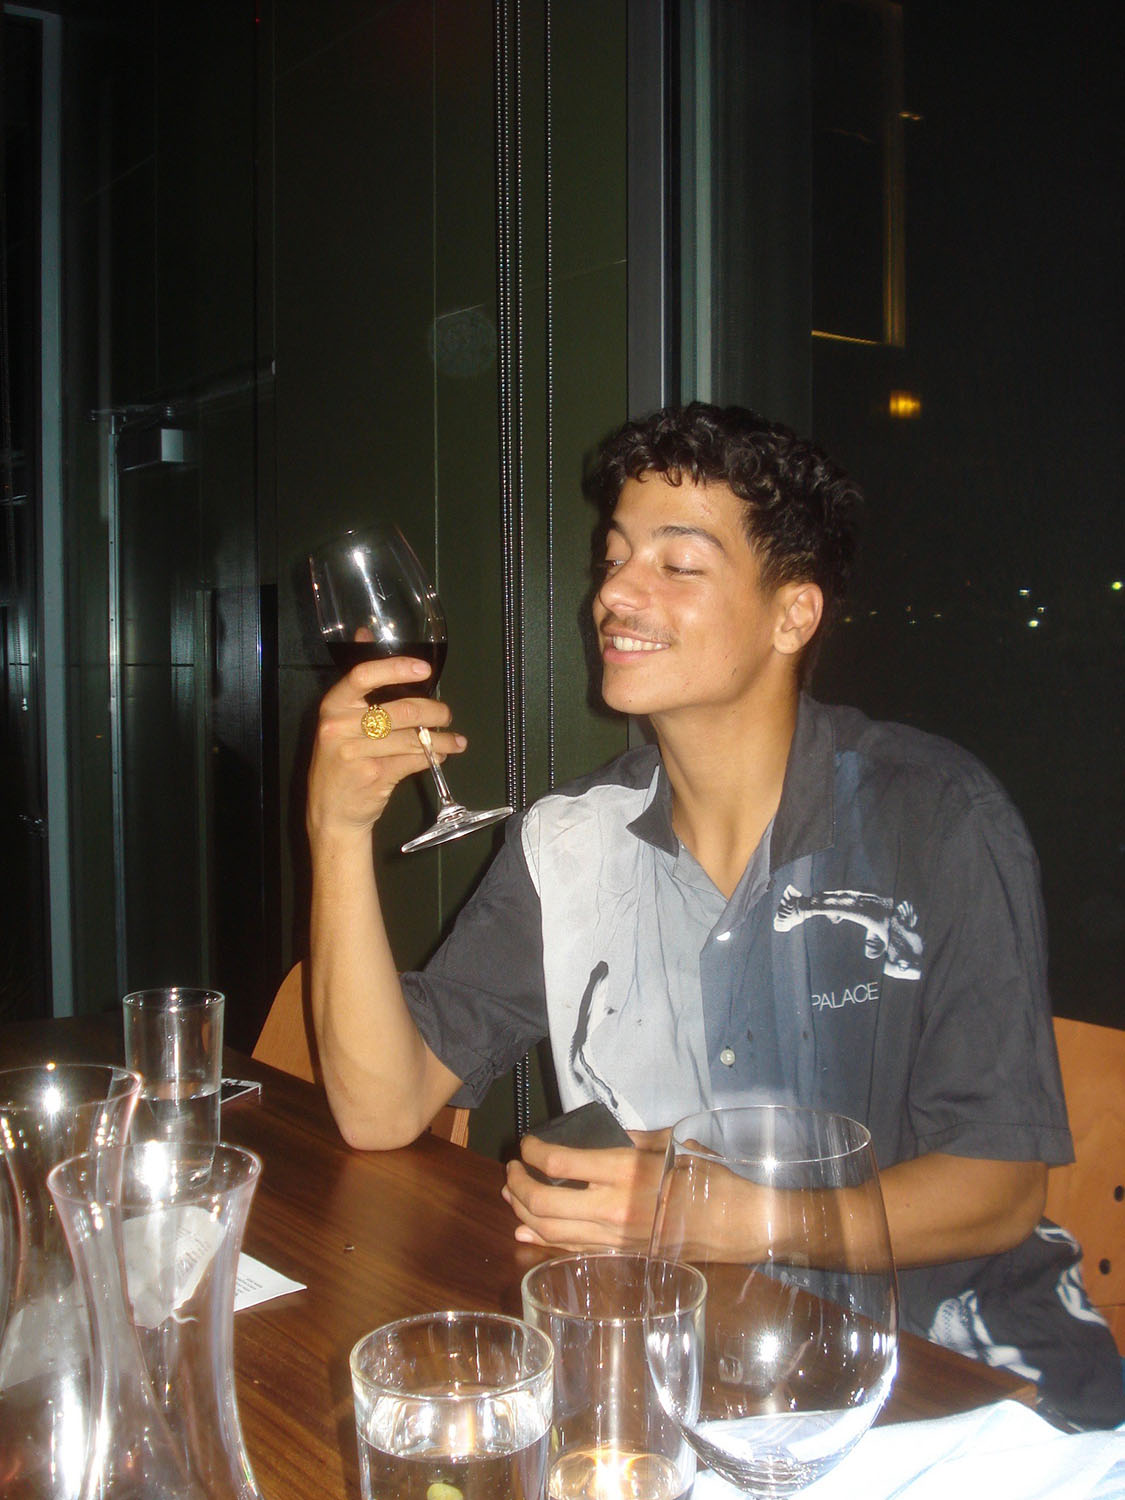 Heitor da Silva on his first Palace trip and embracing the lavish Palace lifestyle with an expensive glass of wine and admiring his new Palace ring. October 2018